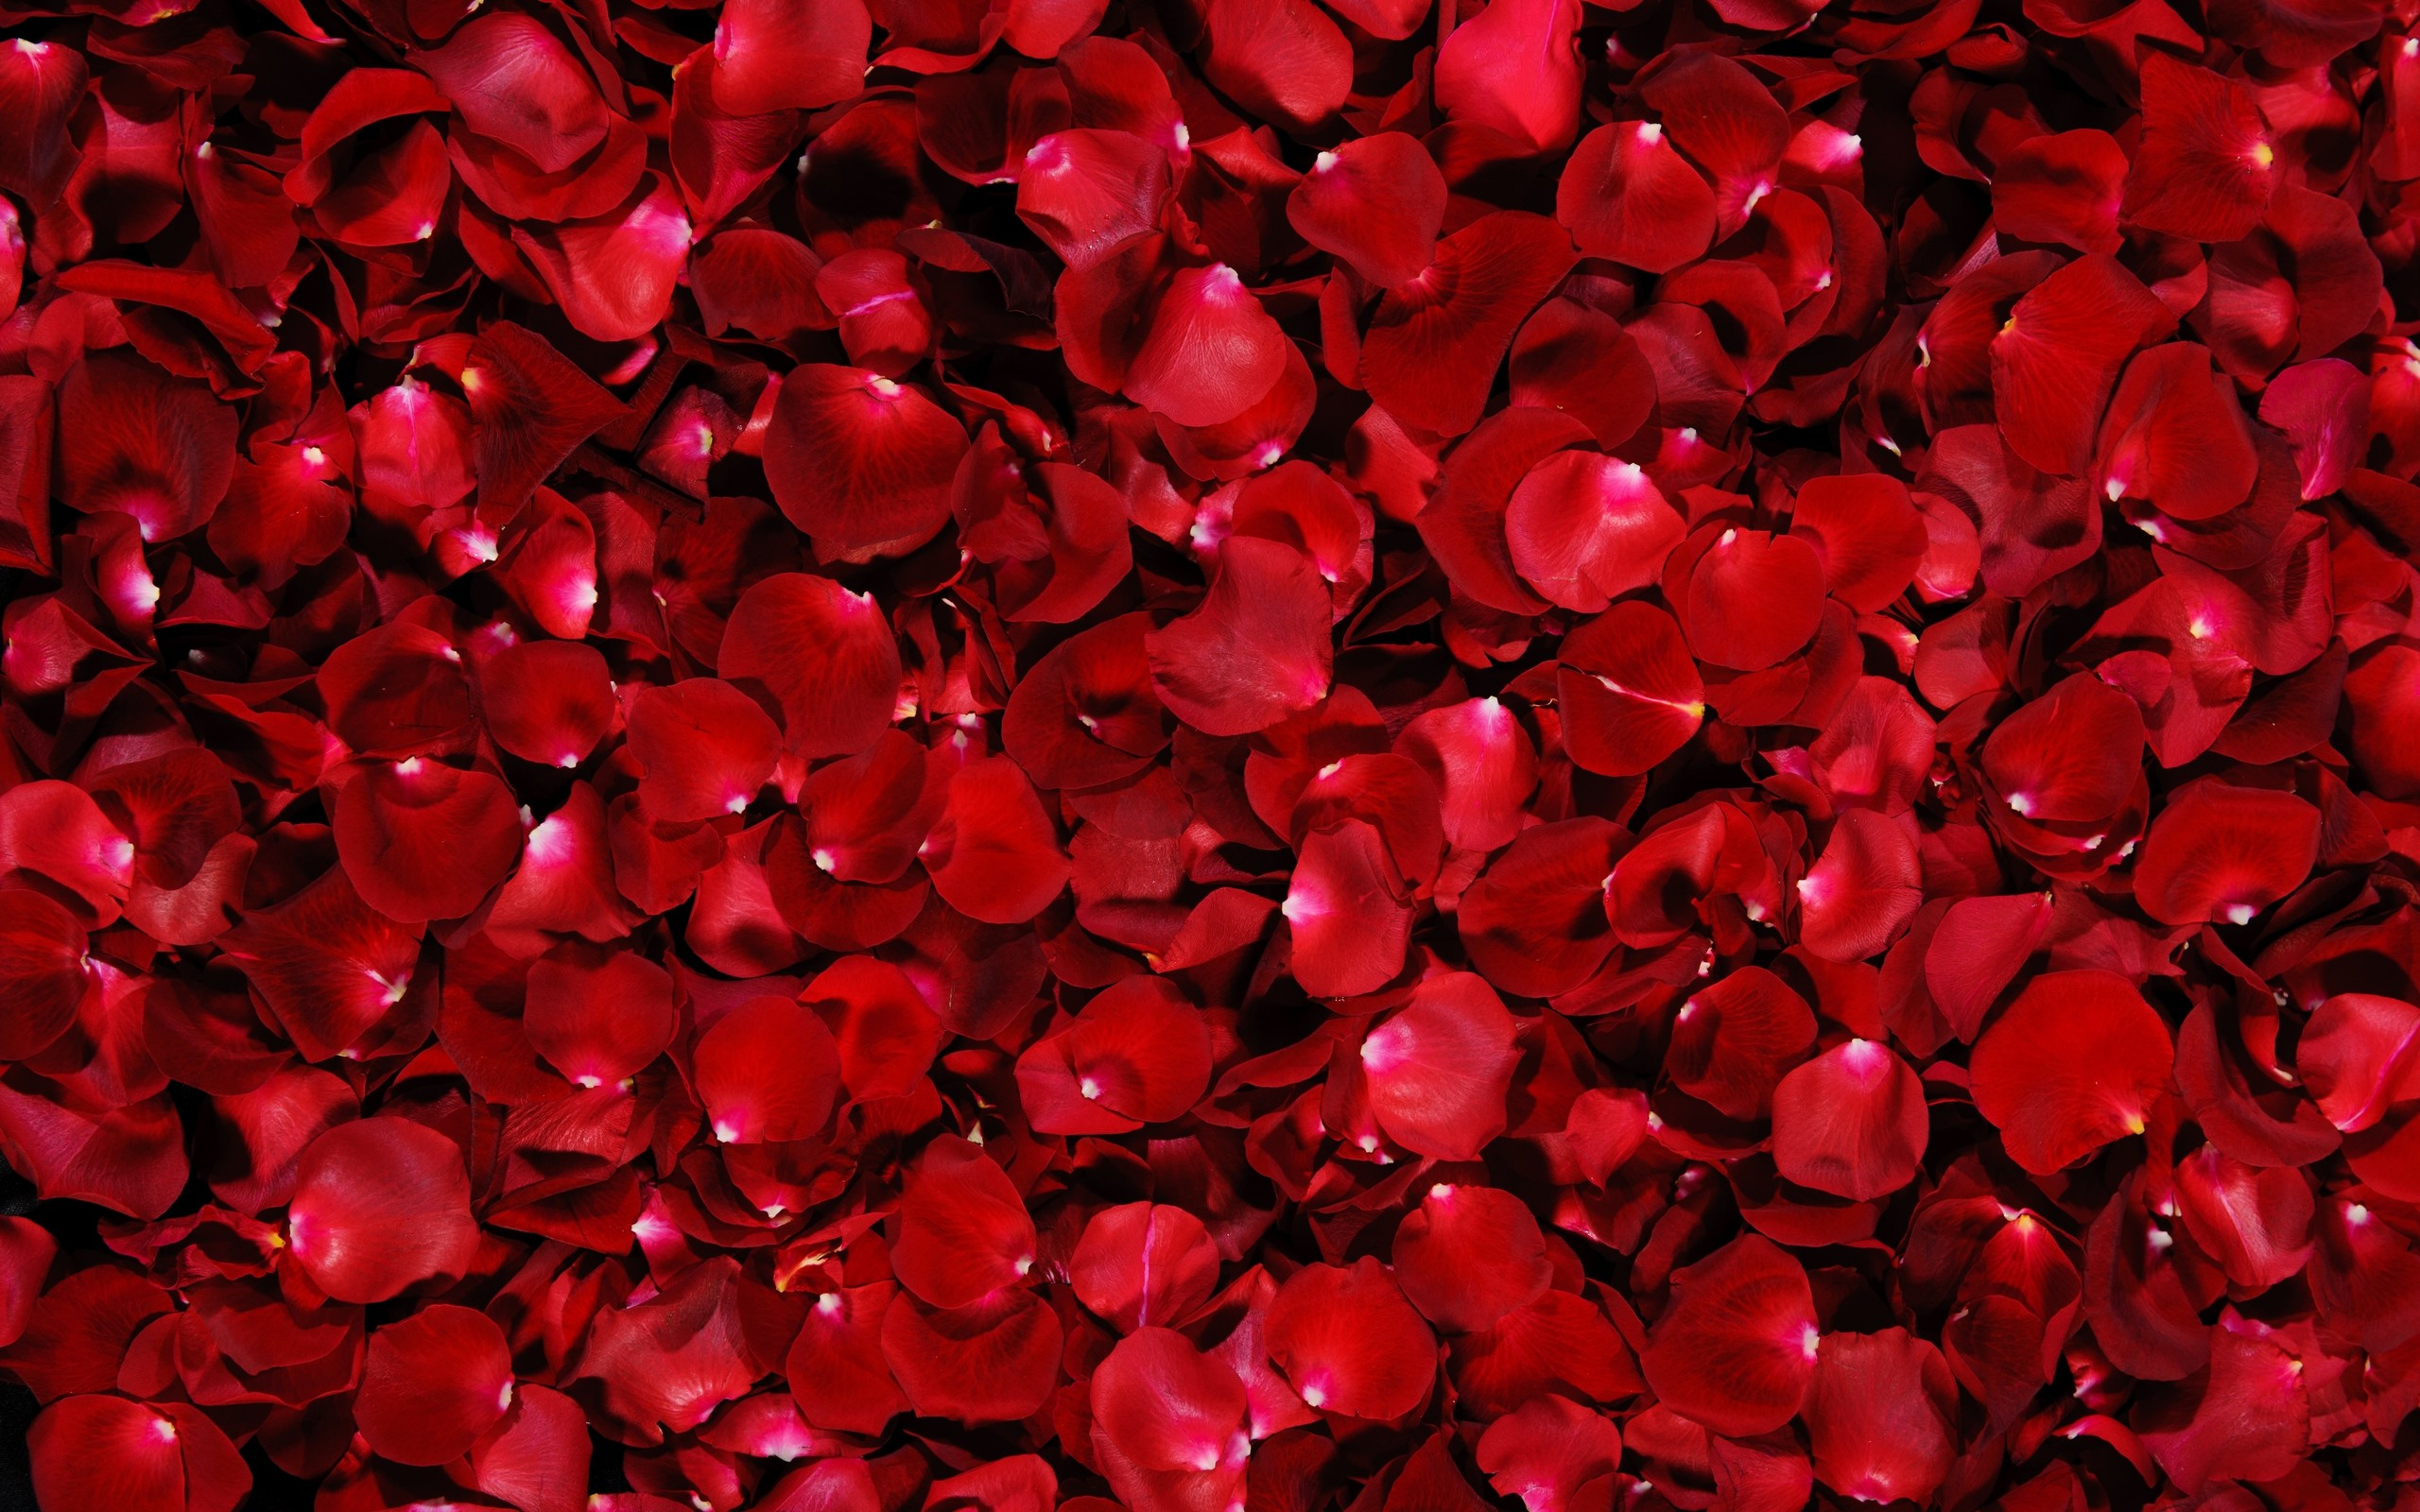 Flower Red Rose Petals